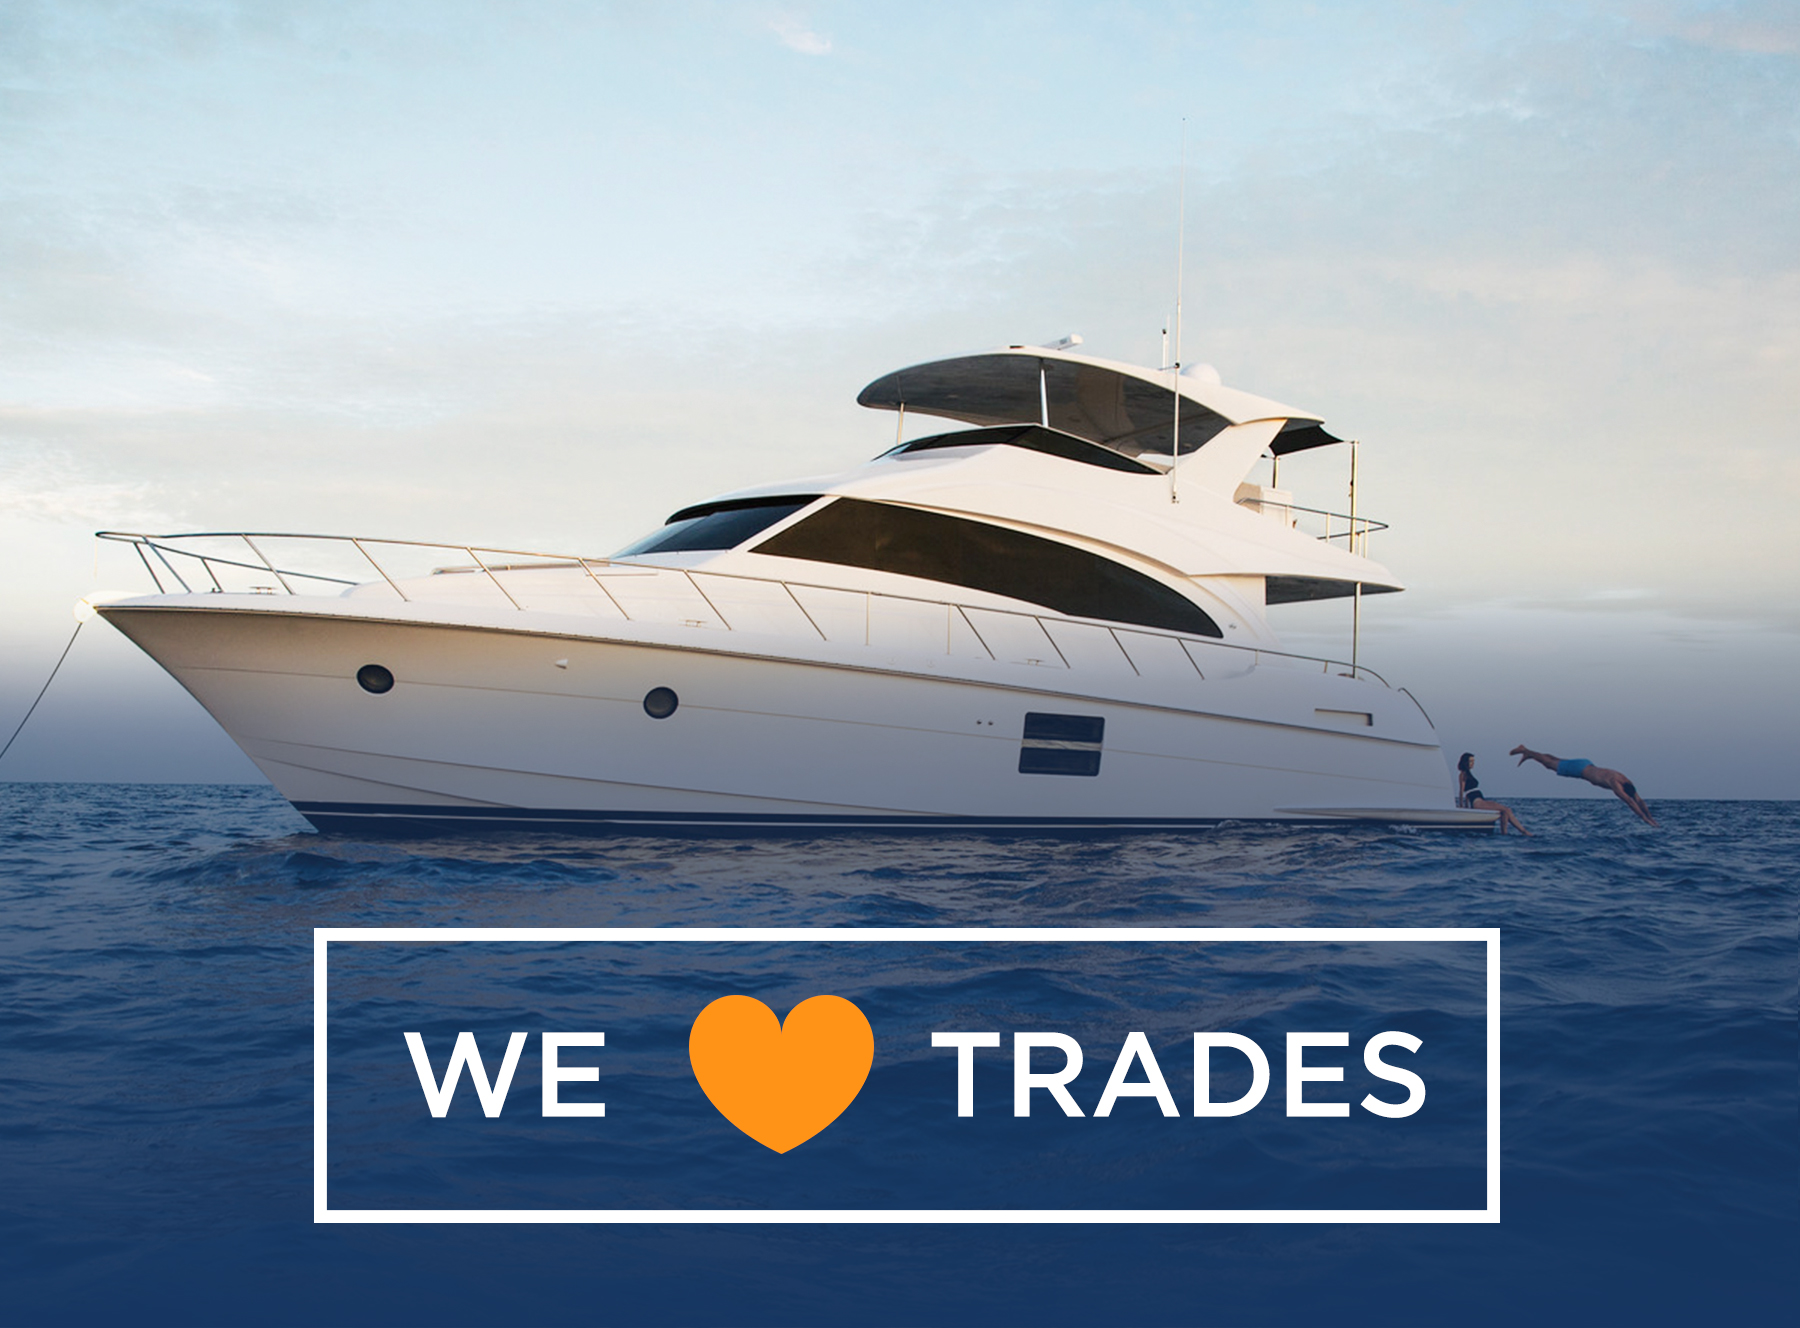 Trade In Your Used Boat